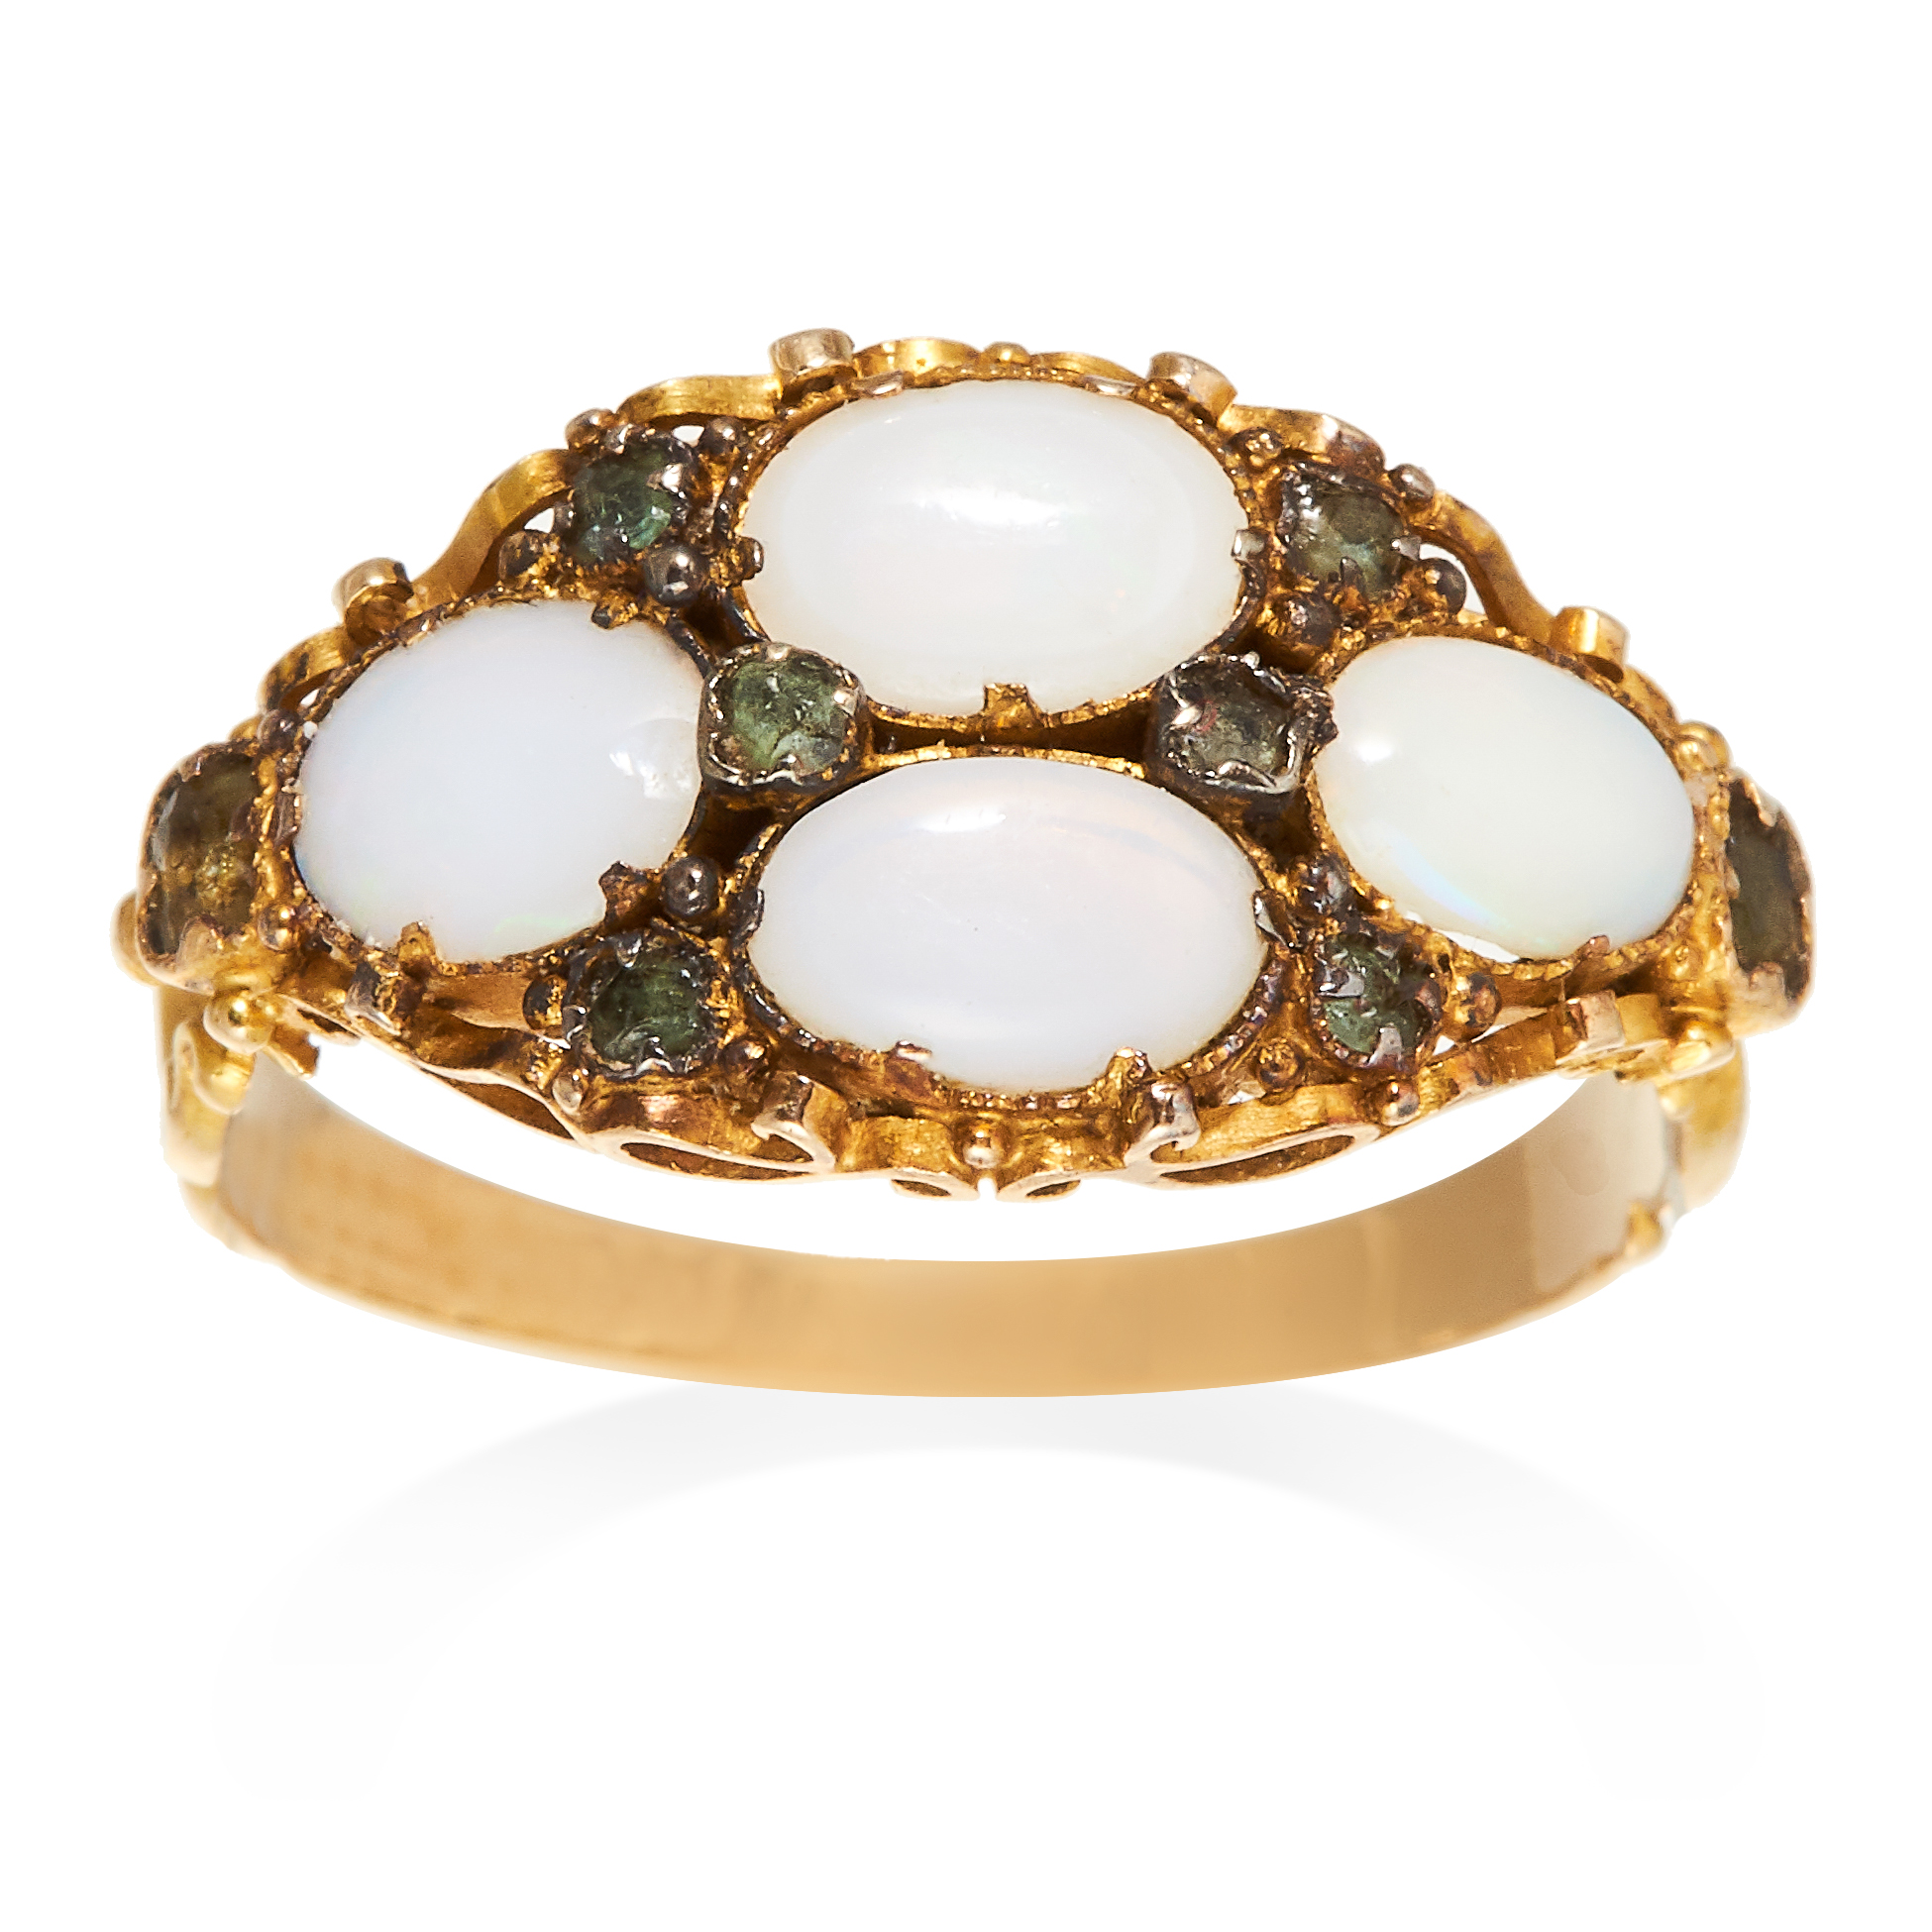 AN ANTIQUE OPAL AND GEM SET RING in high carat yellow gold, set with four oval cabochon opals,